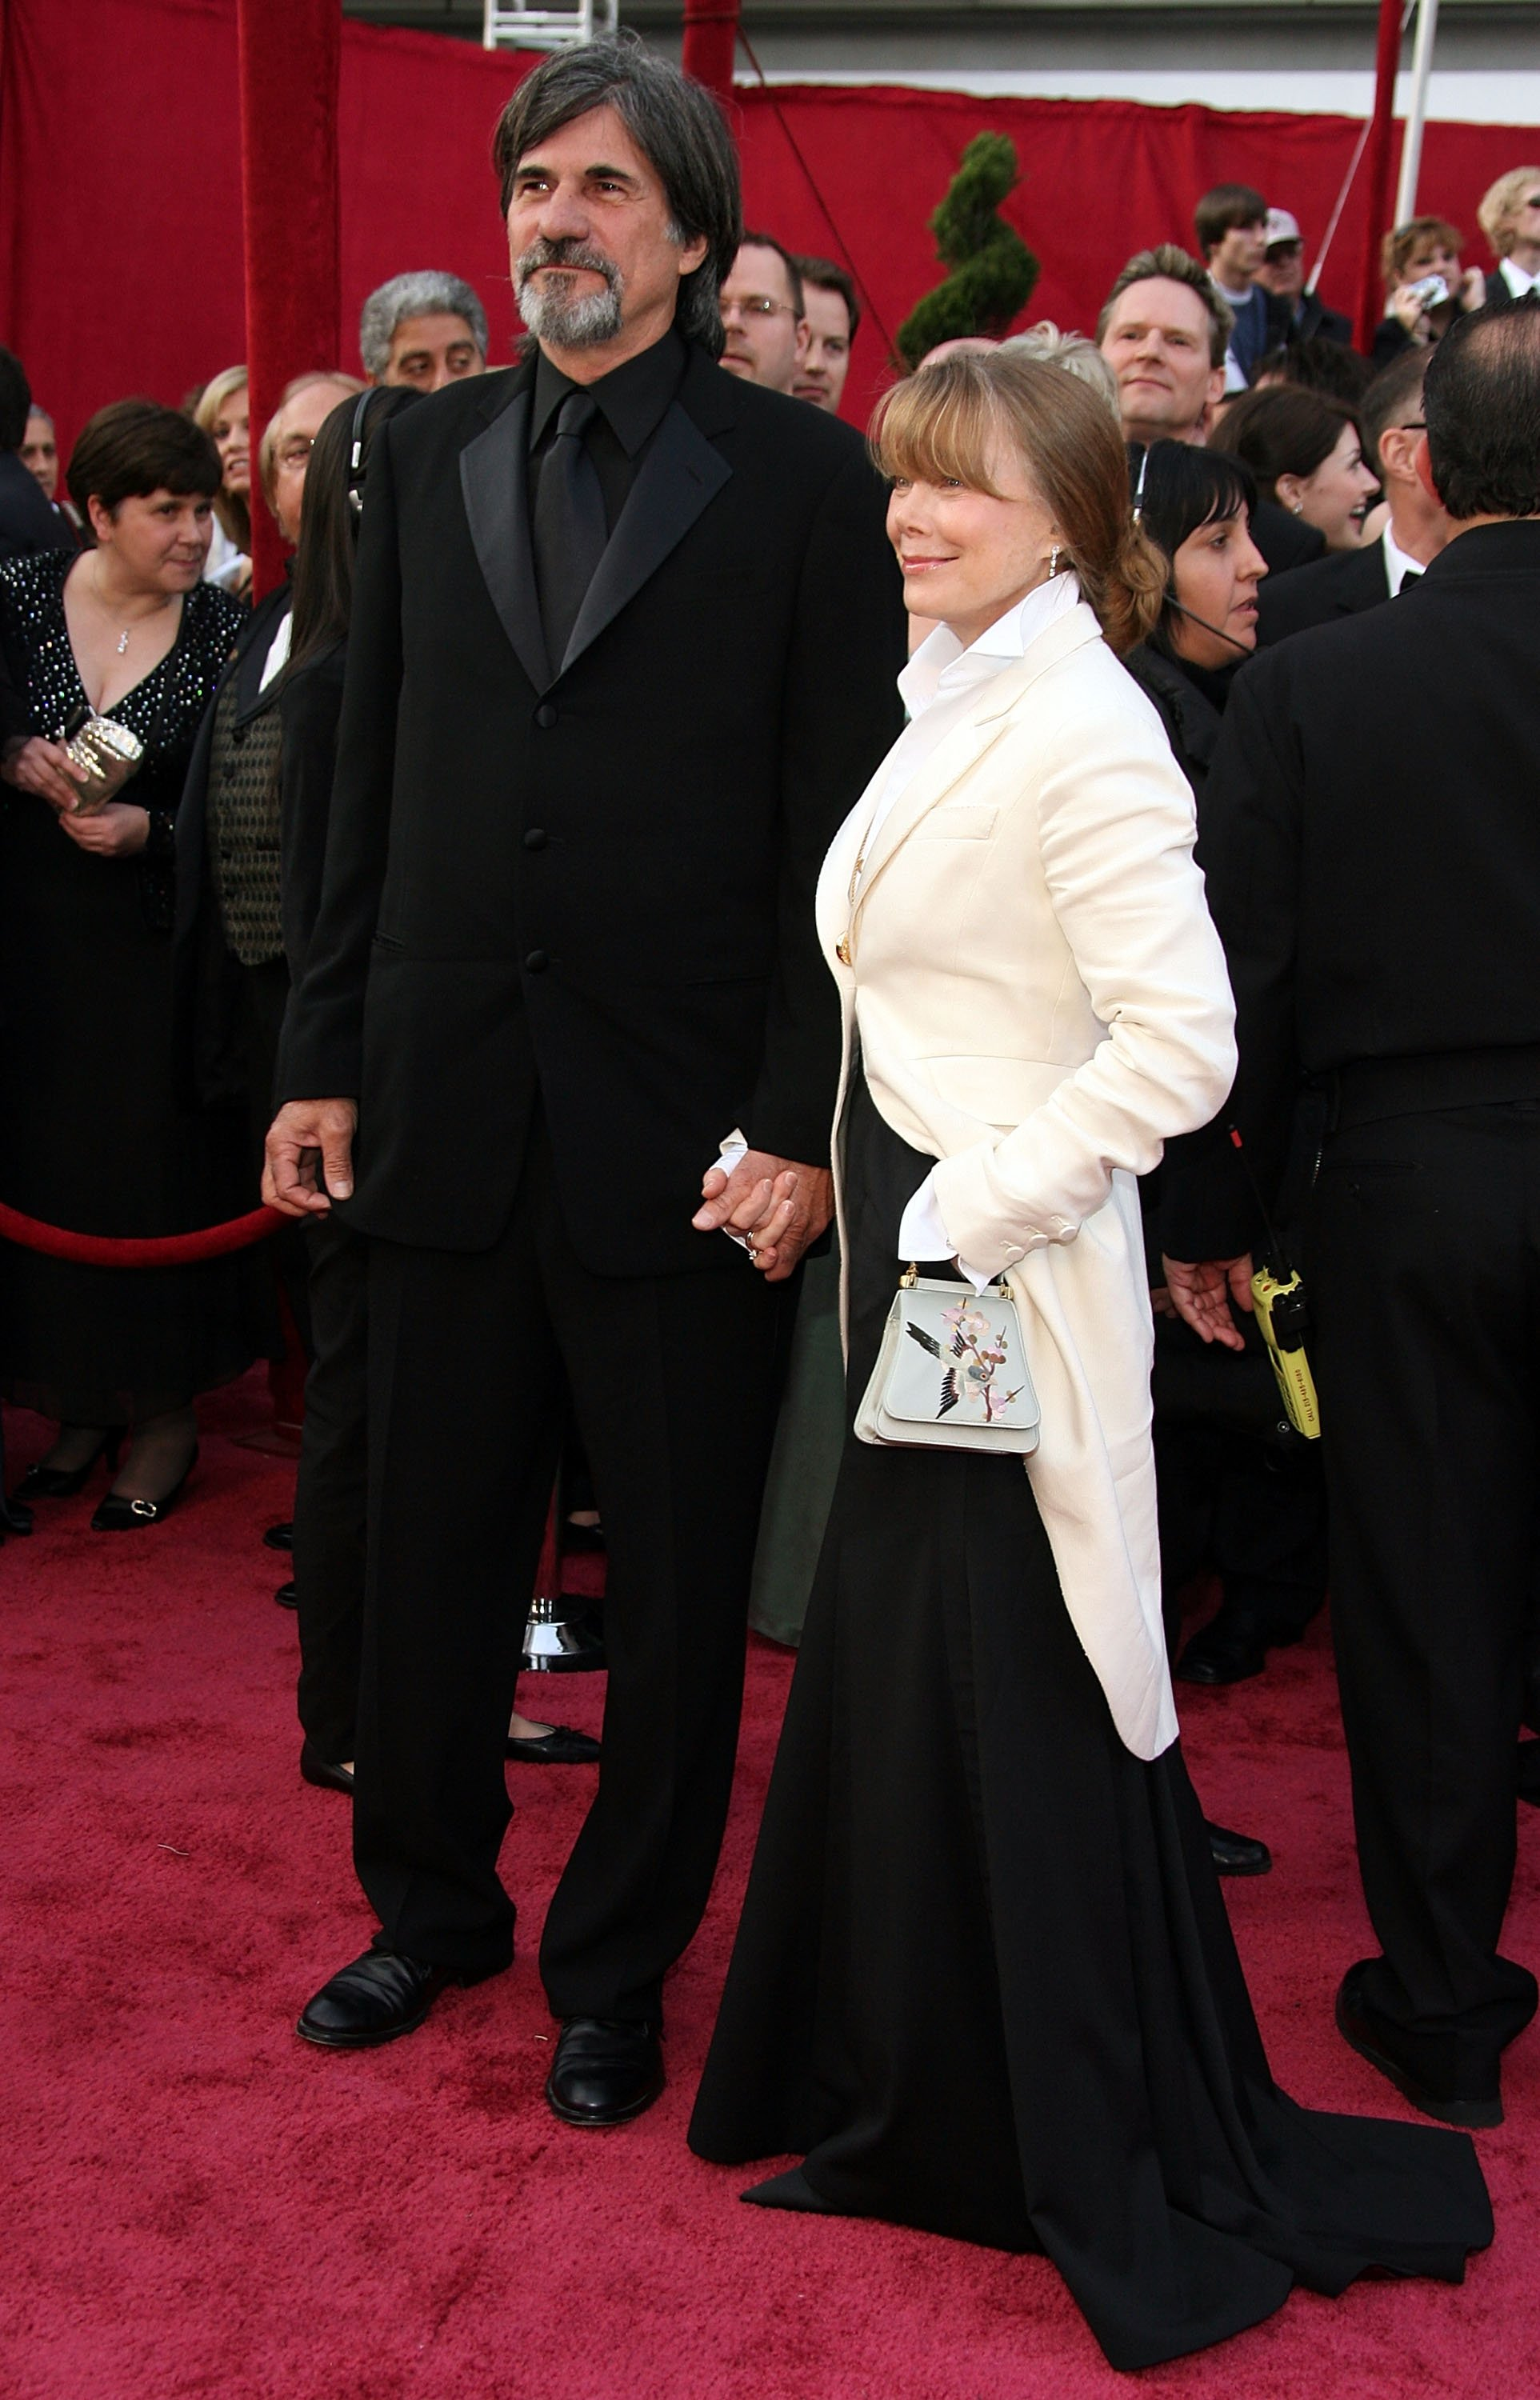 Jack Fisk and actress Sissy Spacek arrive at the 80th Annual Academy Awards held at the Kodak Theatre on February 24, 2008, in Hollywood, California. | Source: Getty Images.